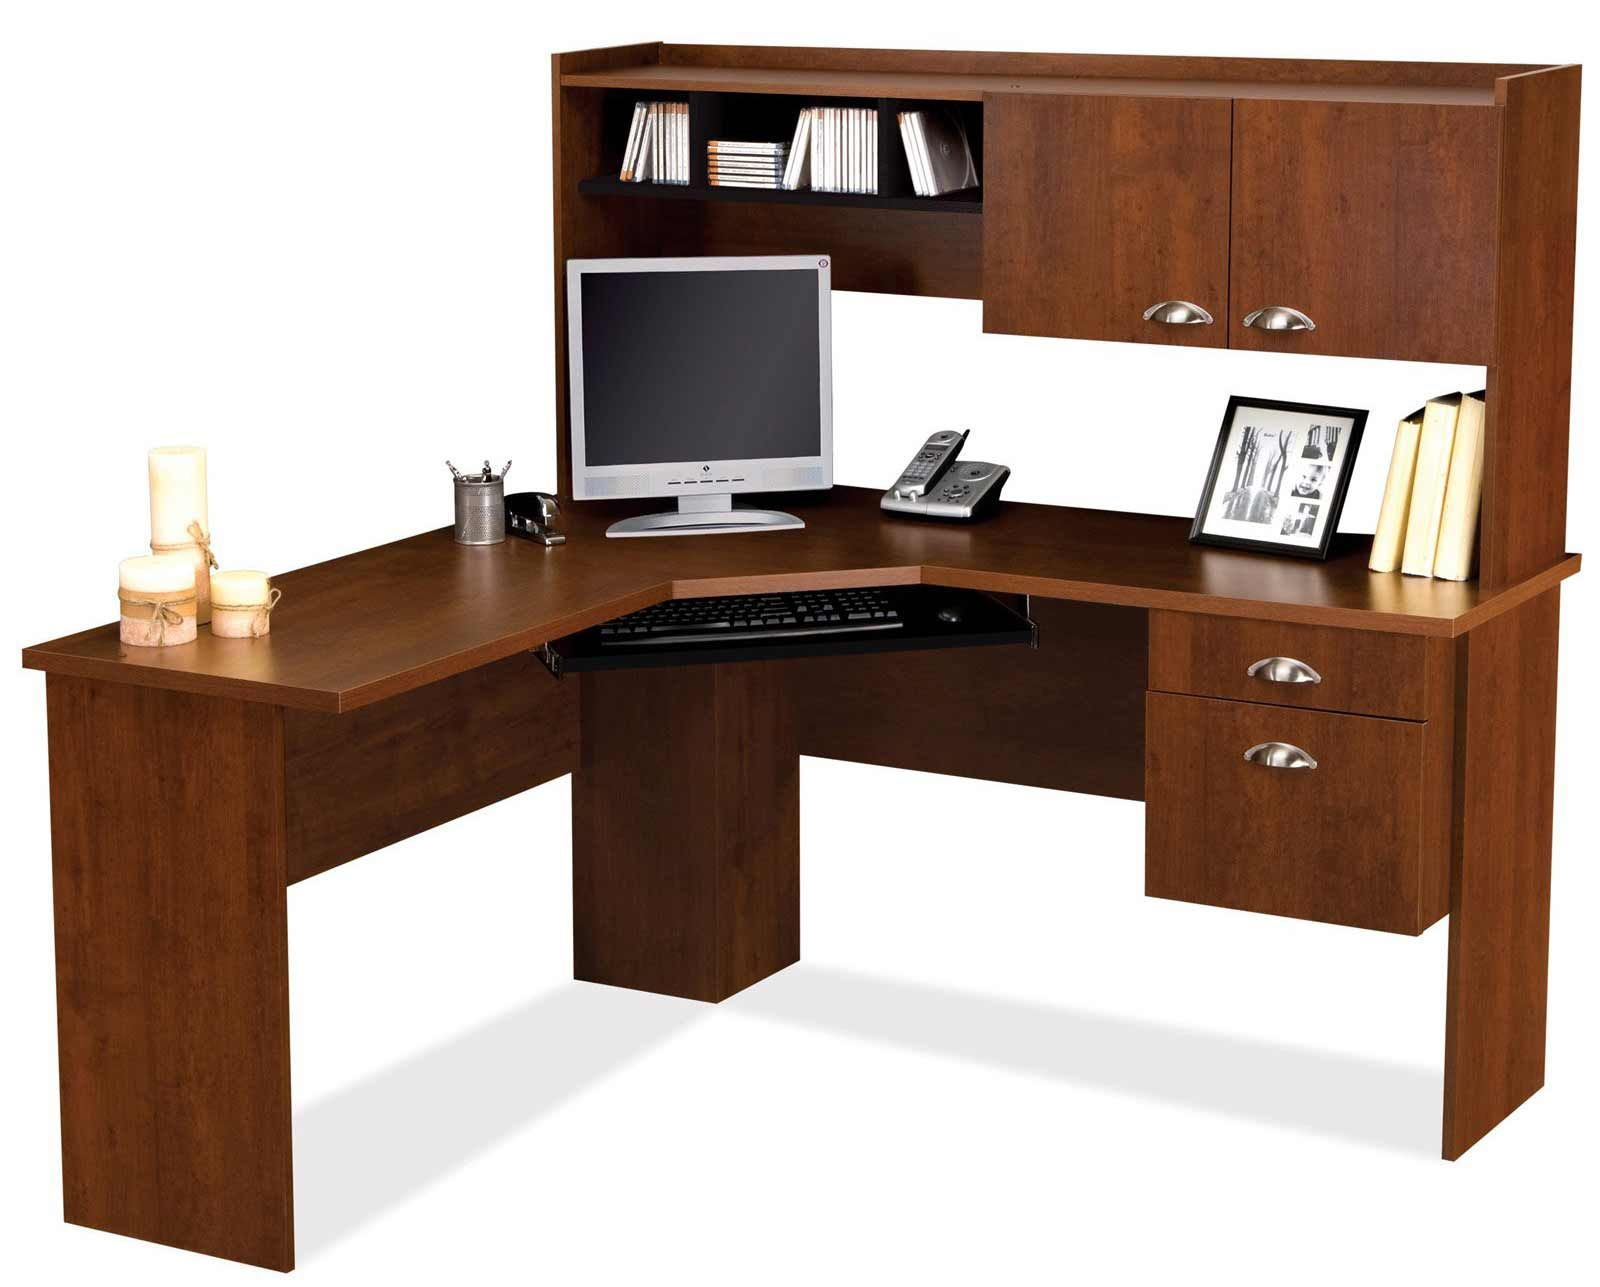 Oak office desk benefits for home office - 15 Wonderful Computer Desk Image Ideas 8 Tips For Choosing The Best Computer Desk For Your Needs And Space